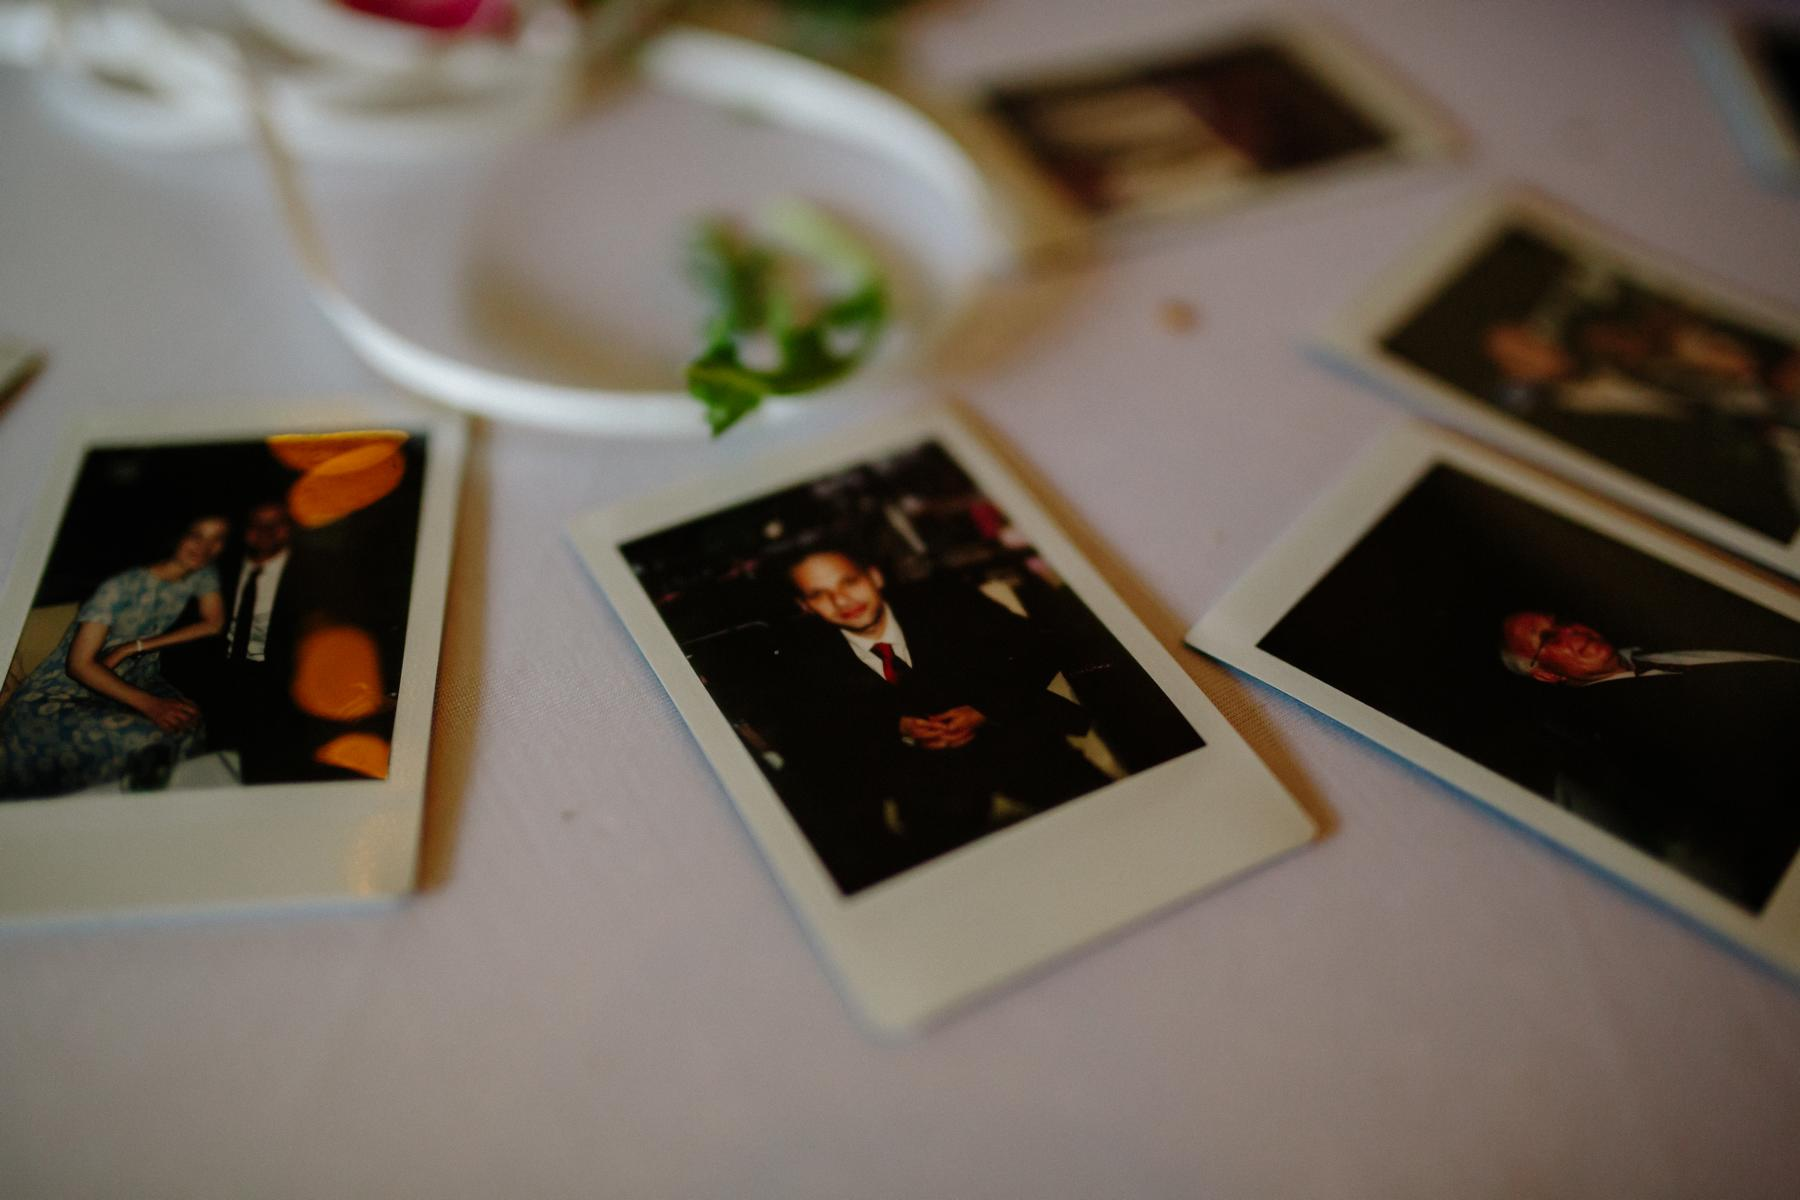 Instax Mini pictures taken at a wedding reception in Berlin